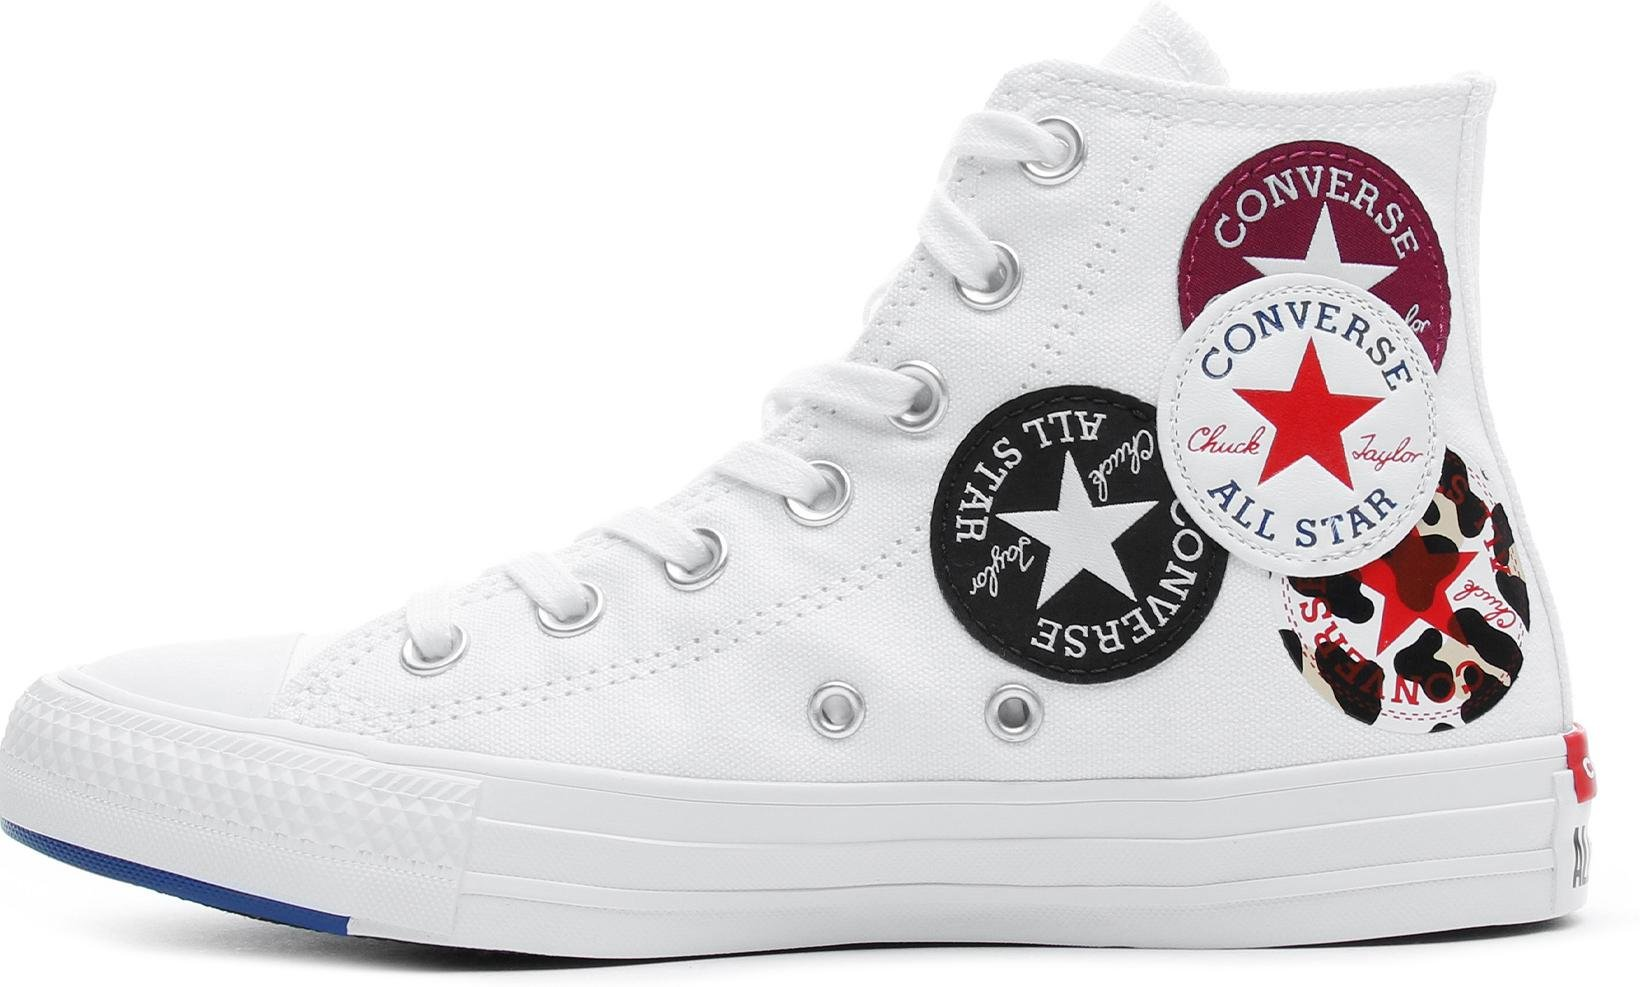 Zapatillas Converse chuck taylor as high sneaker 2